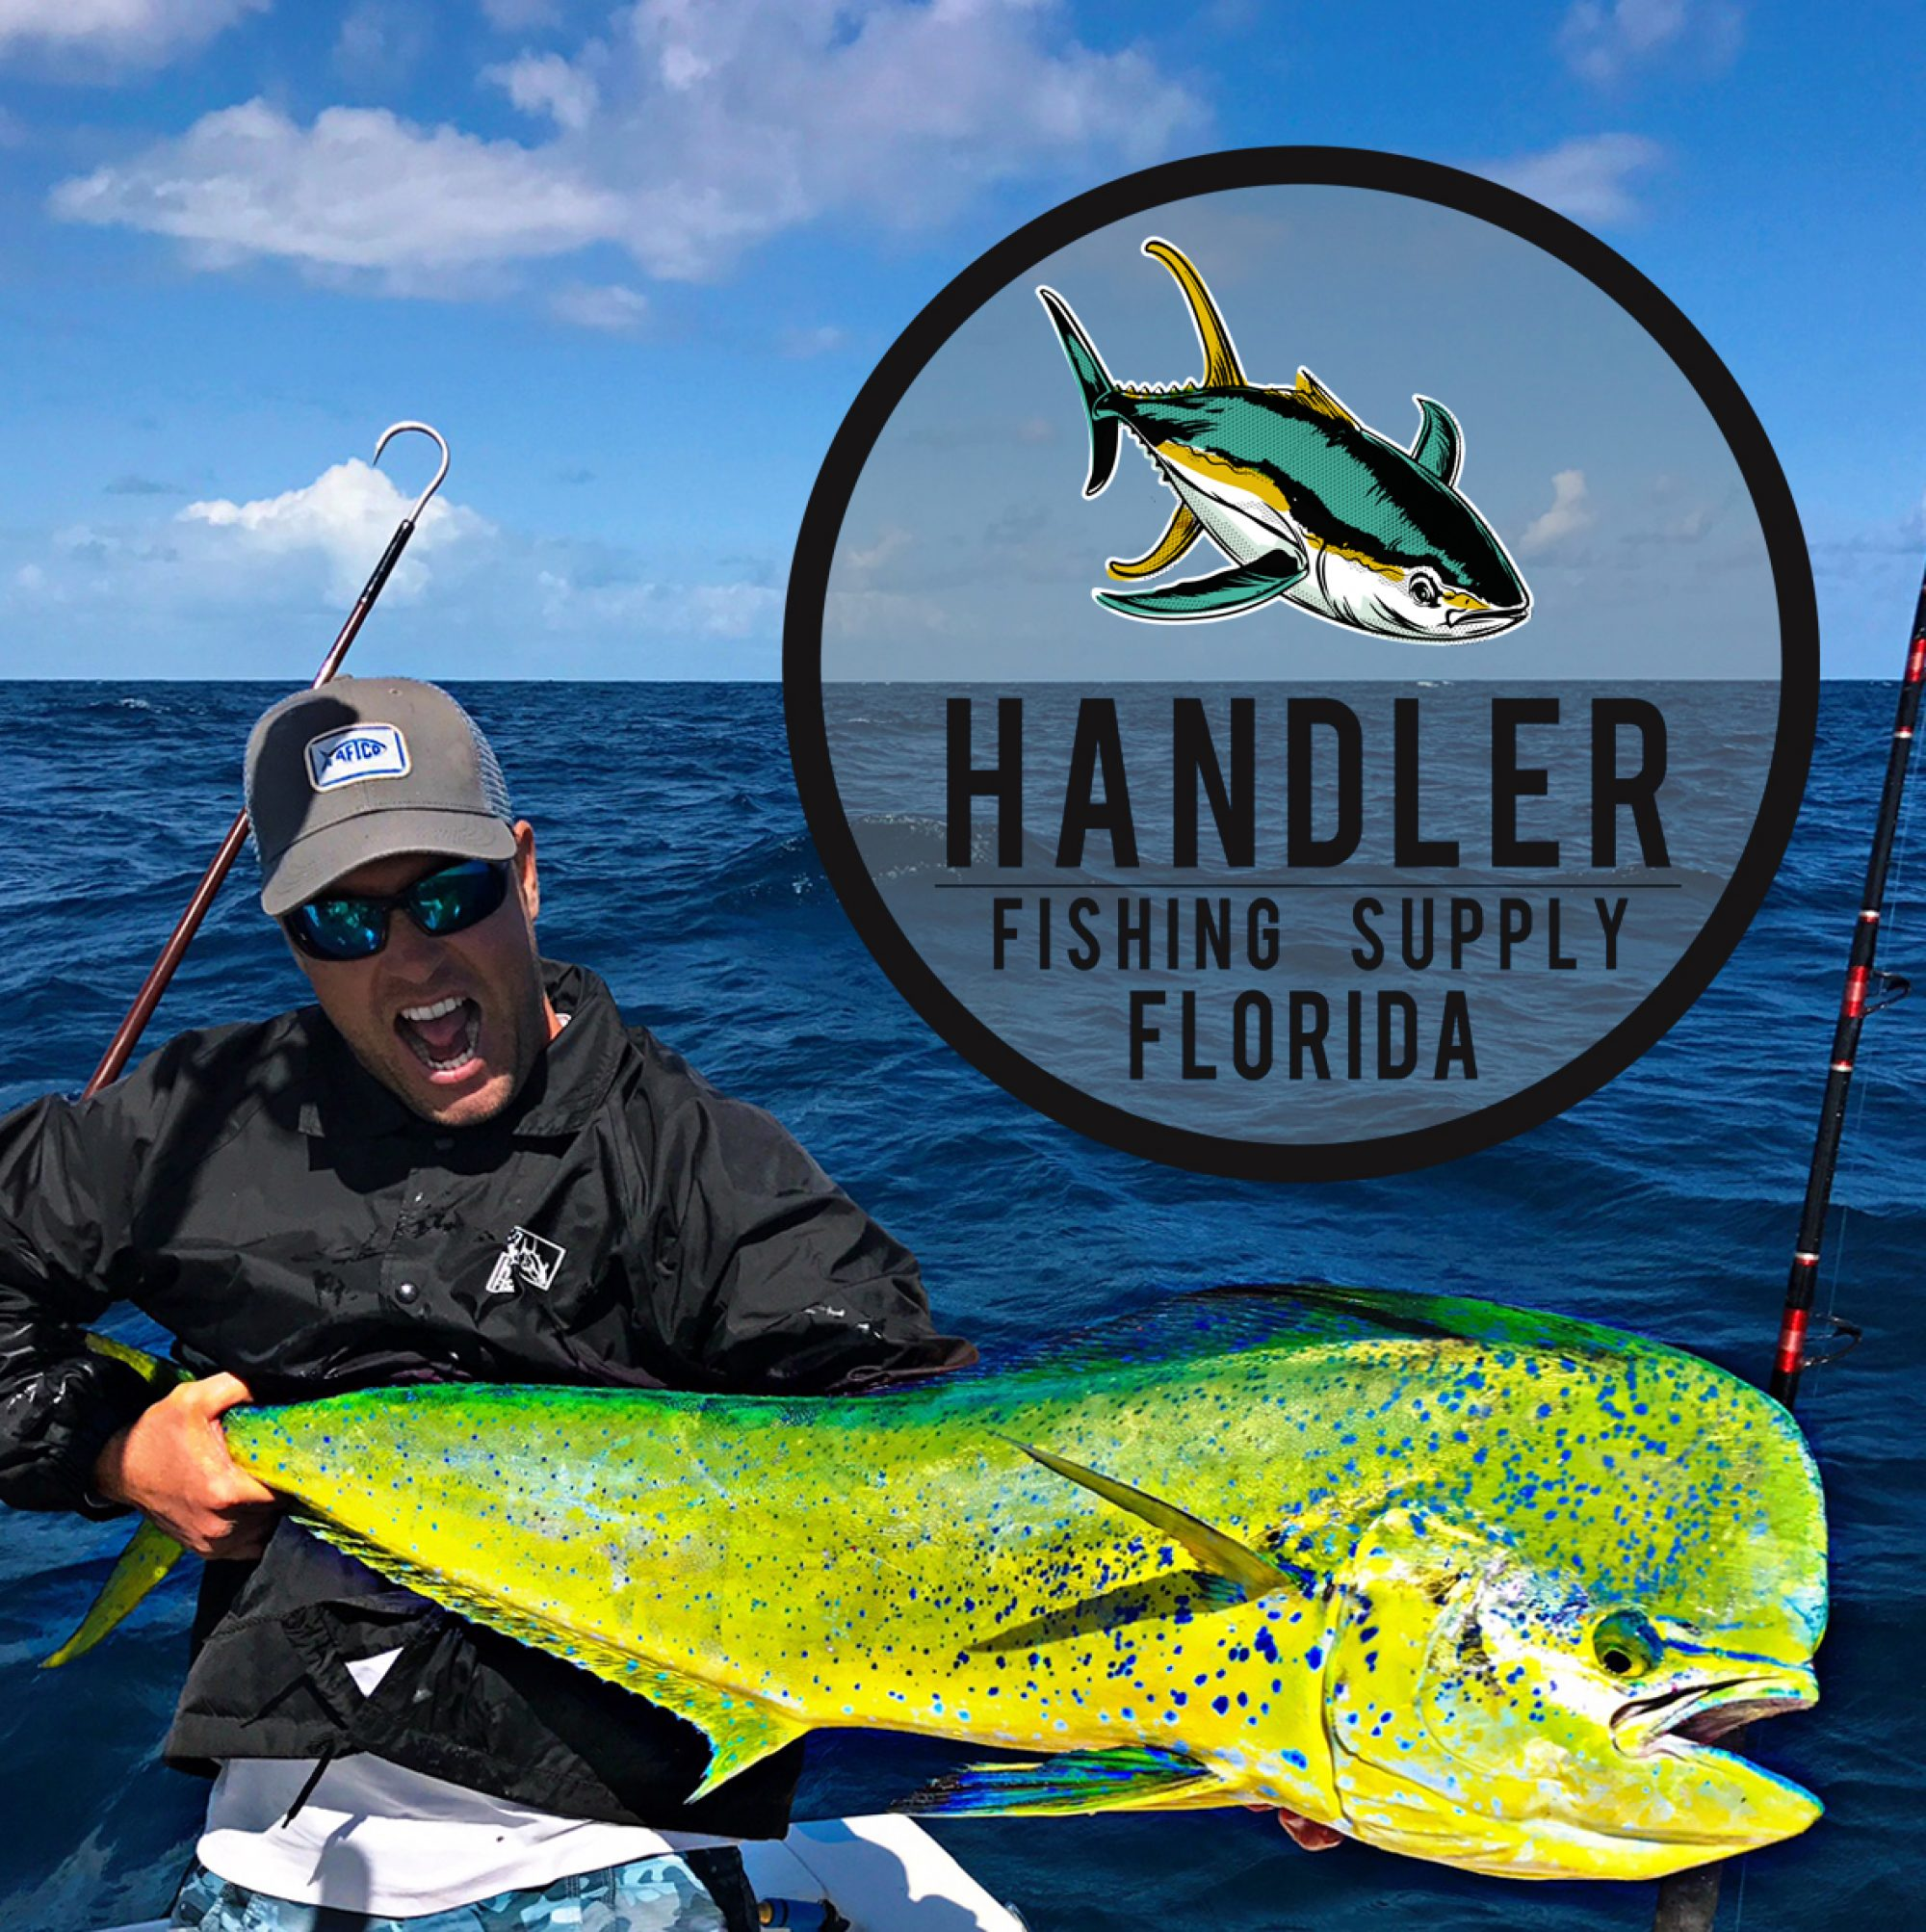 Handler Fishing Supply in Merritt Island, Florida